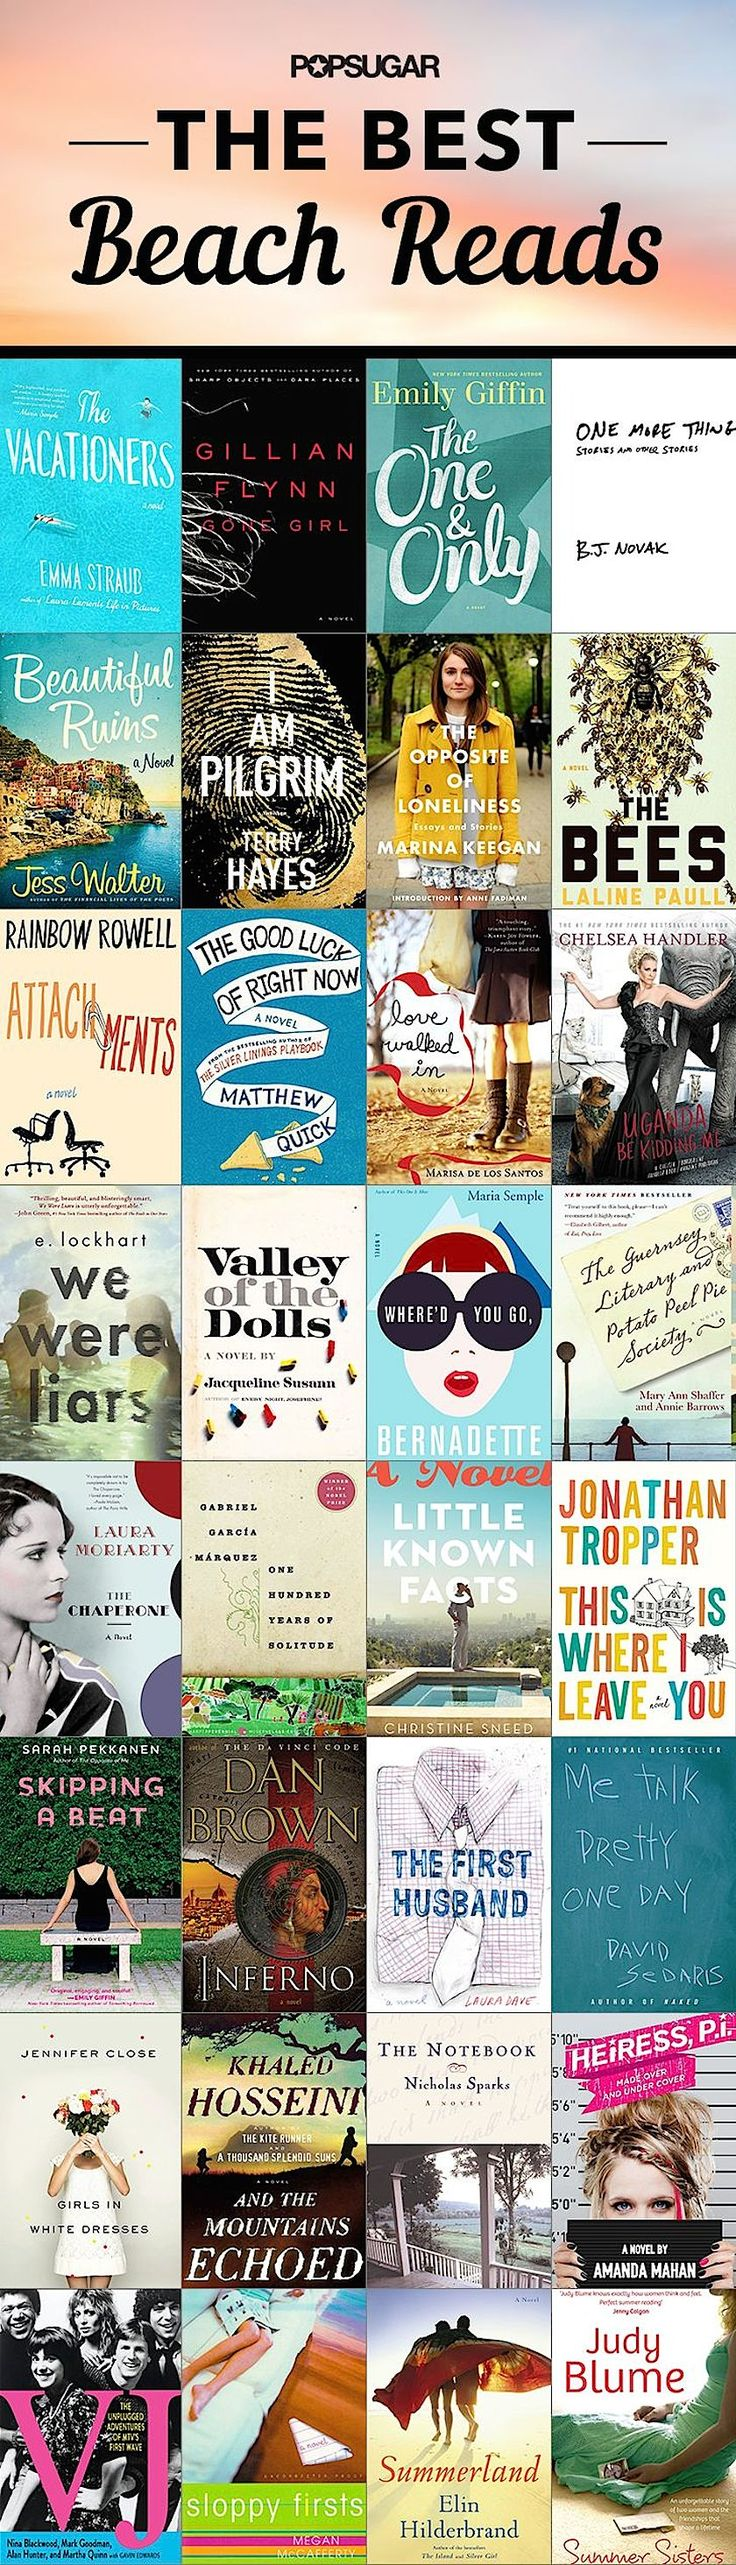 Best beach reads 2014 (infographic)